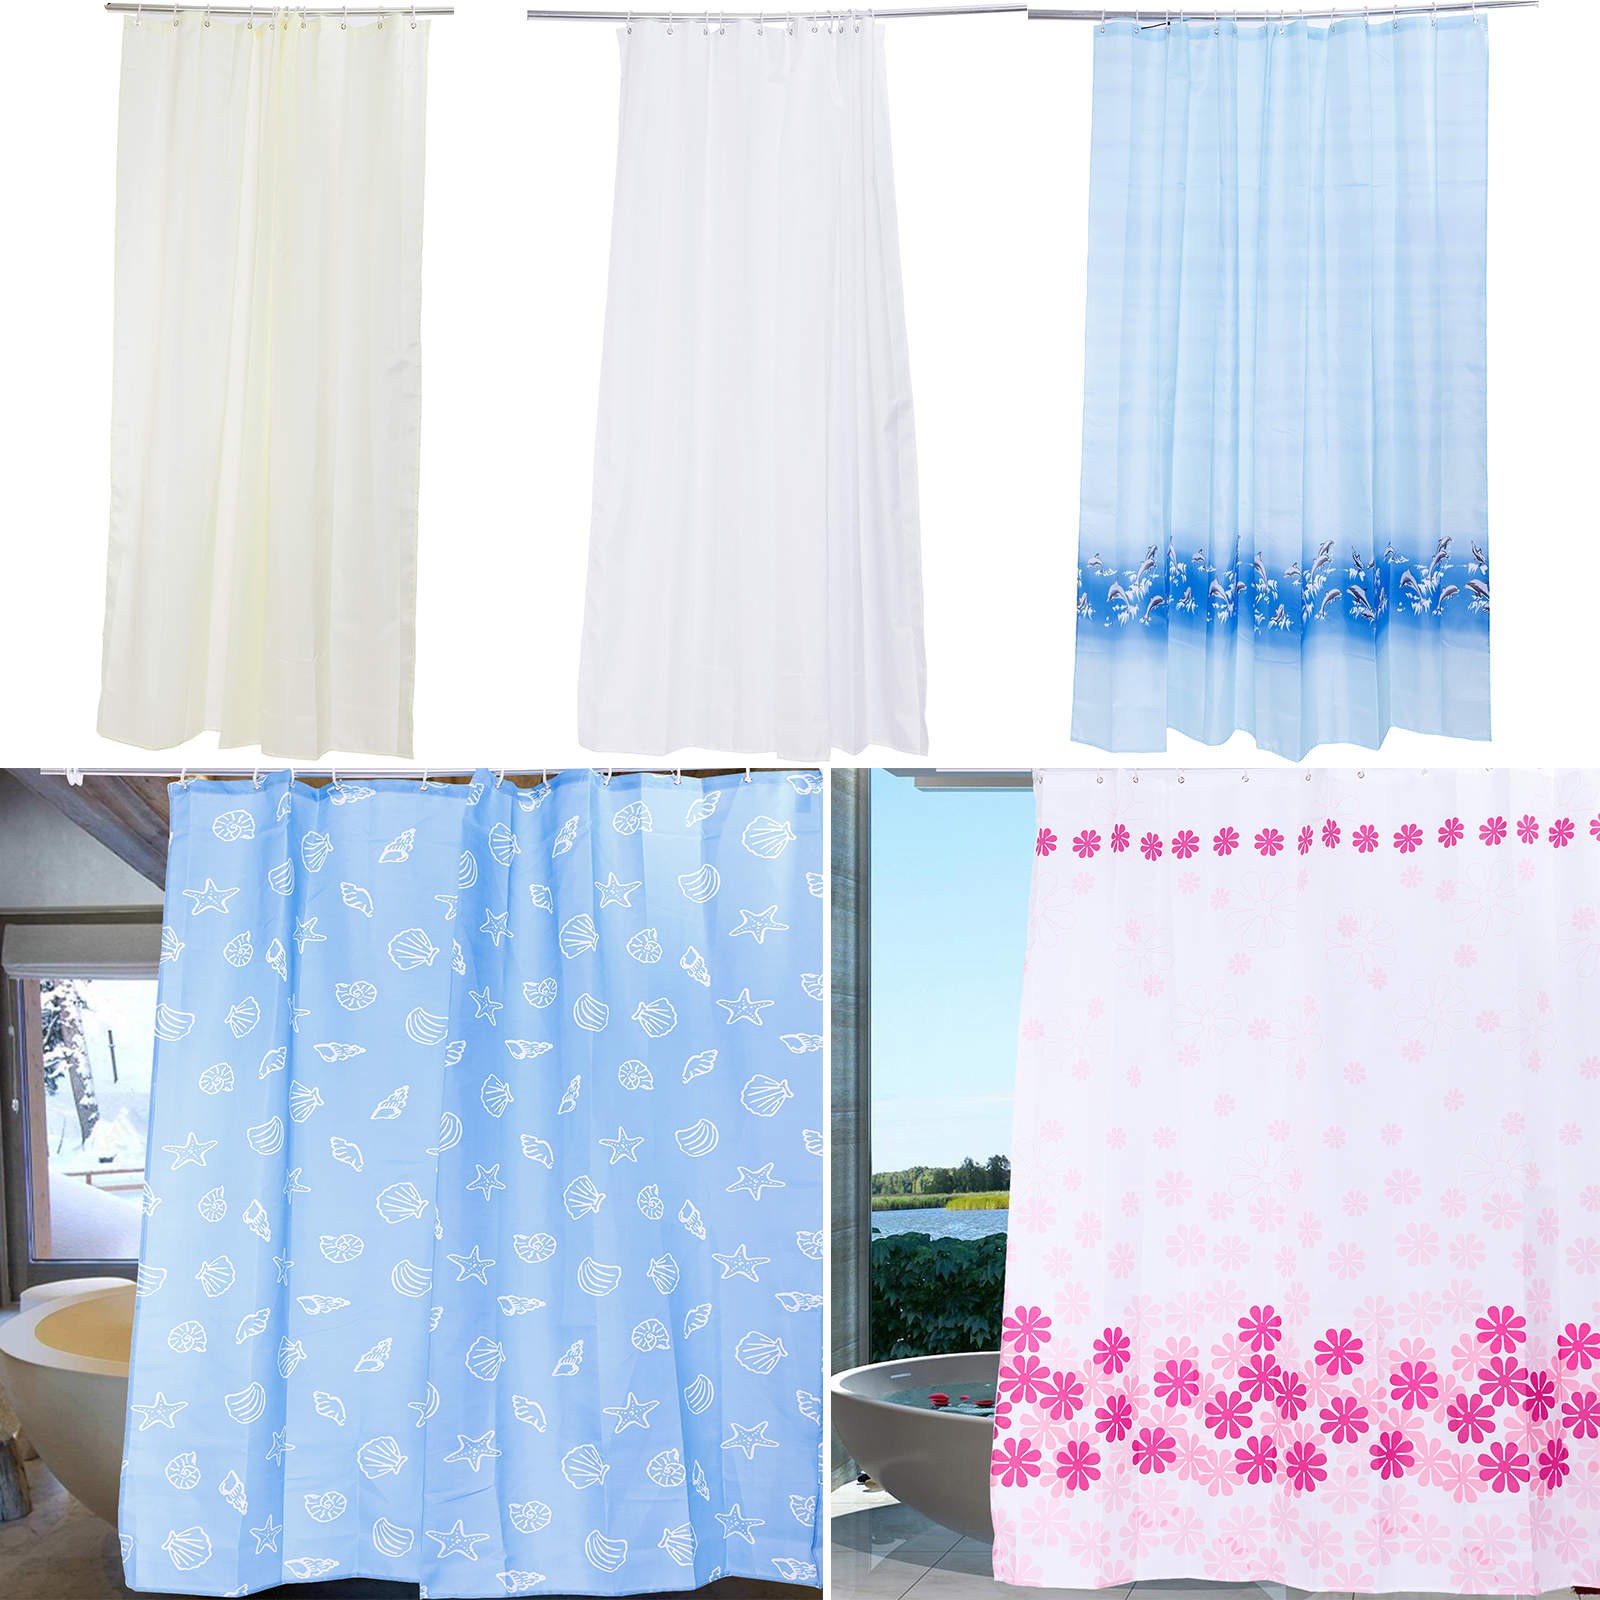 Antibacterial Shower Curtains, Different Sizes, Extra Wide, Narrow ...